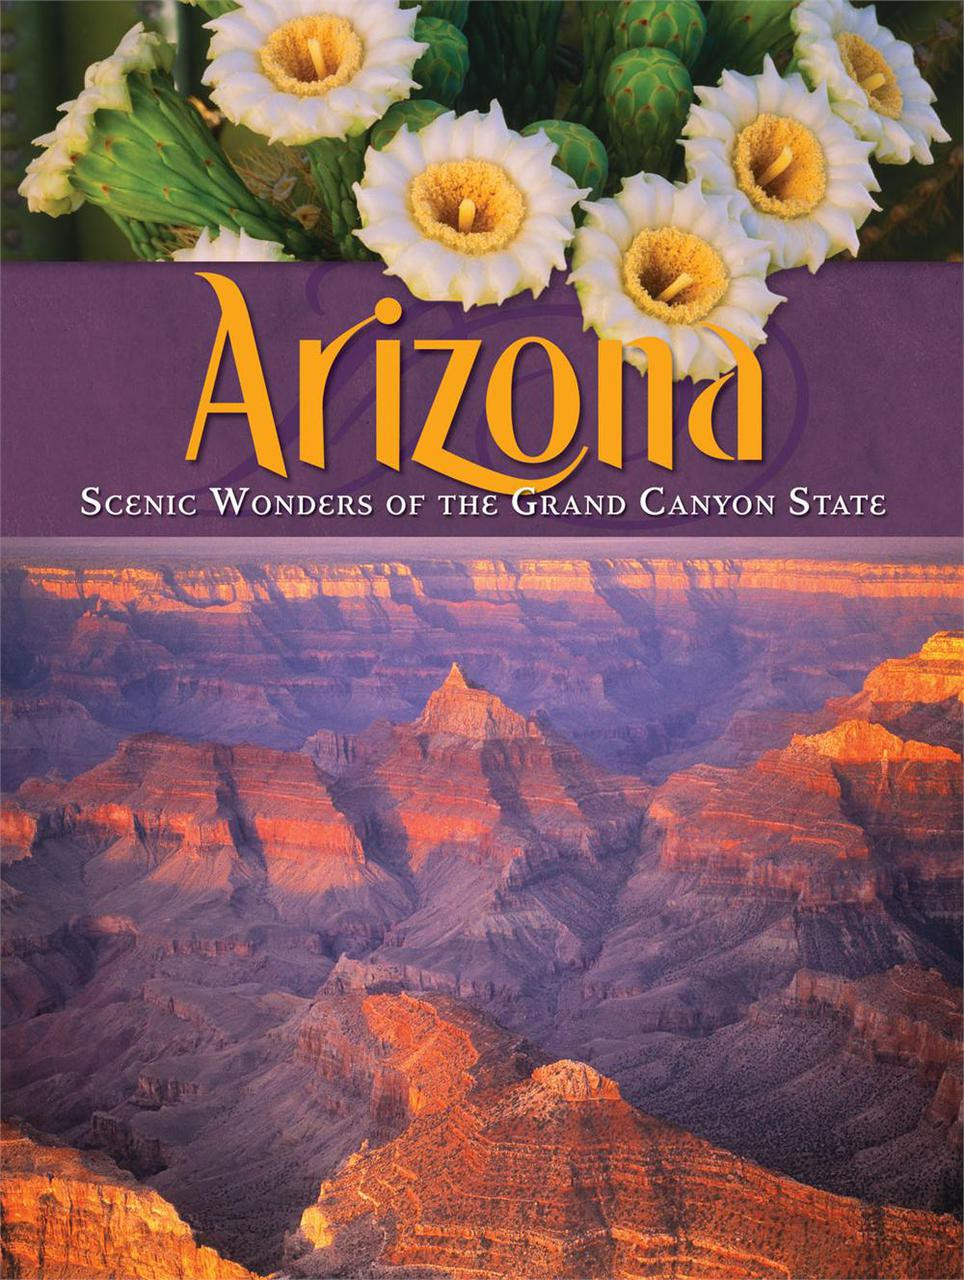 Arizona - Scenic Wonders of Grand Canyon State